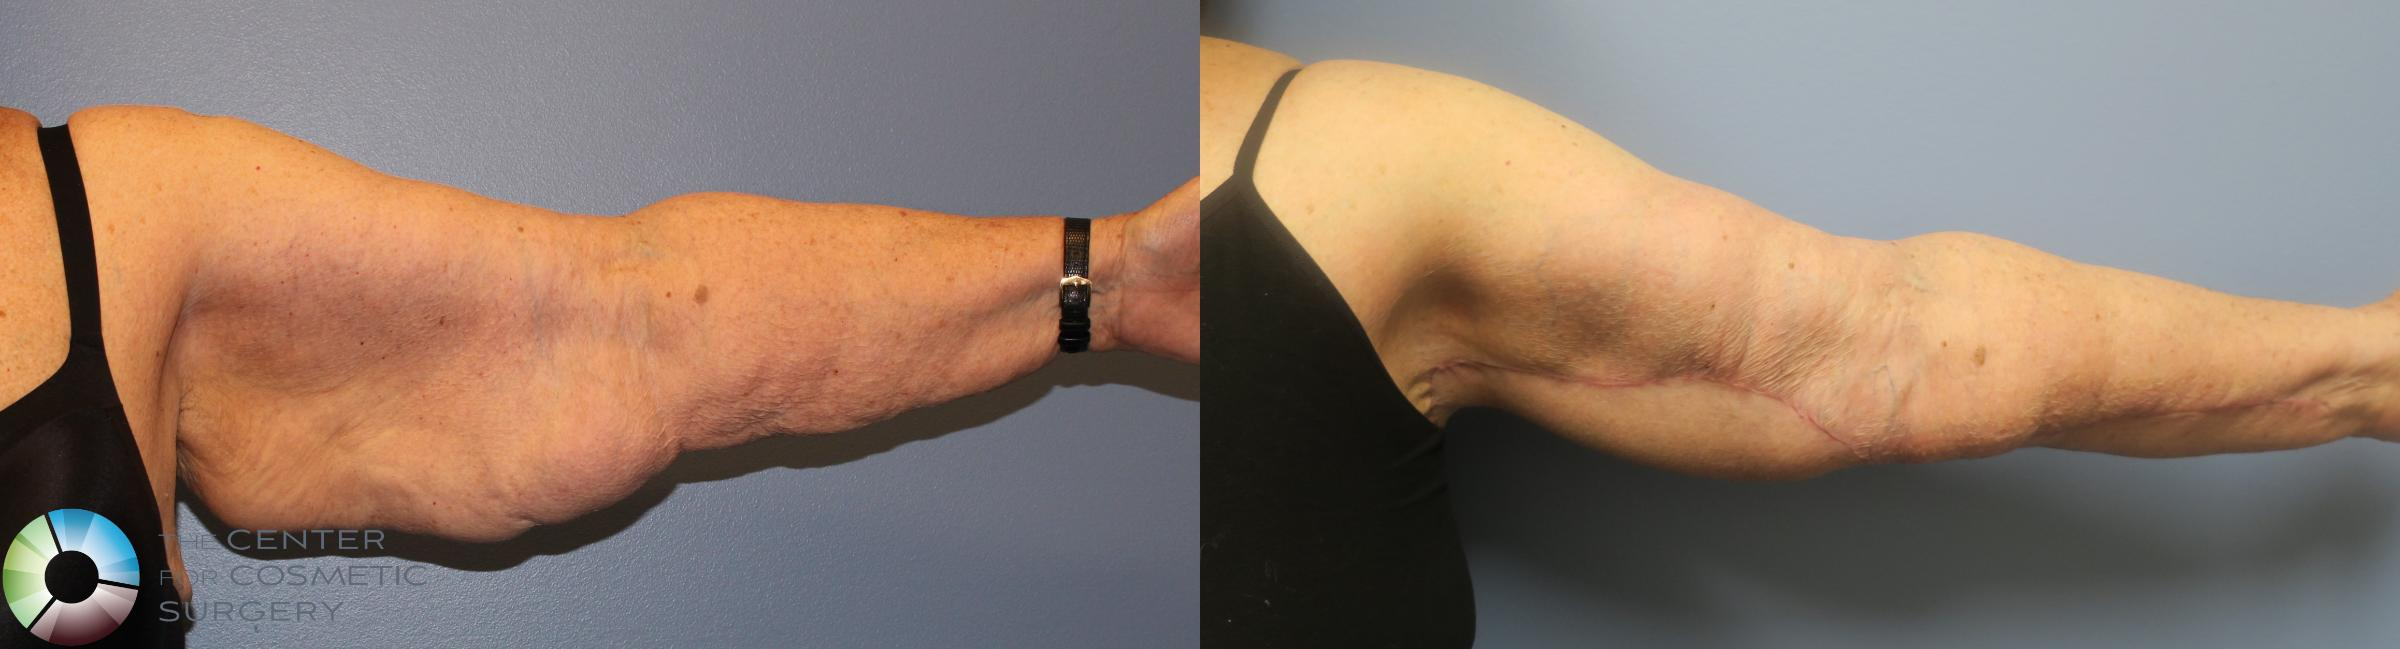 Arm Lift Case 839 Before & After View #3 | Golden, CO | The Center for Cosmetic Surgery